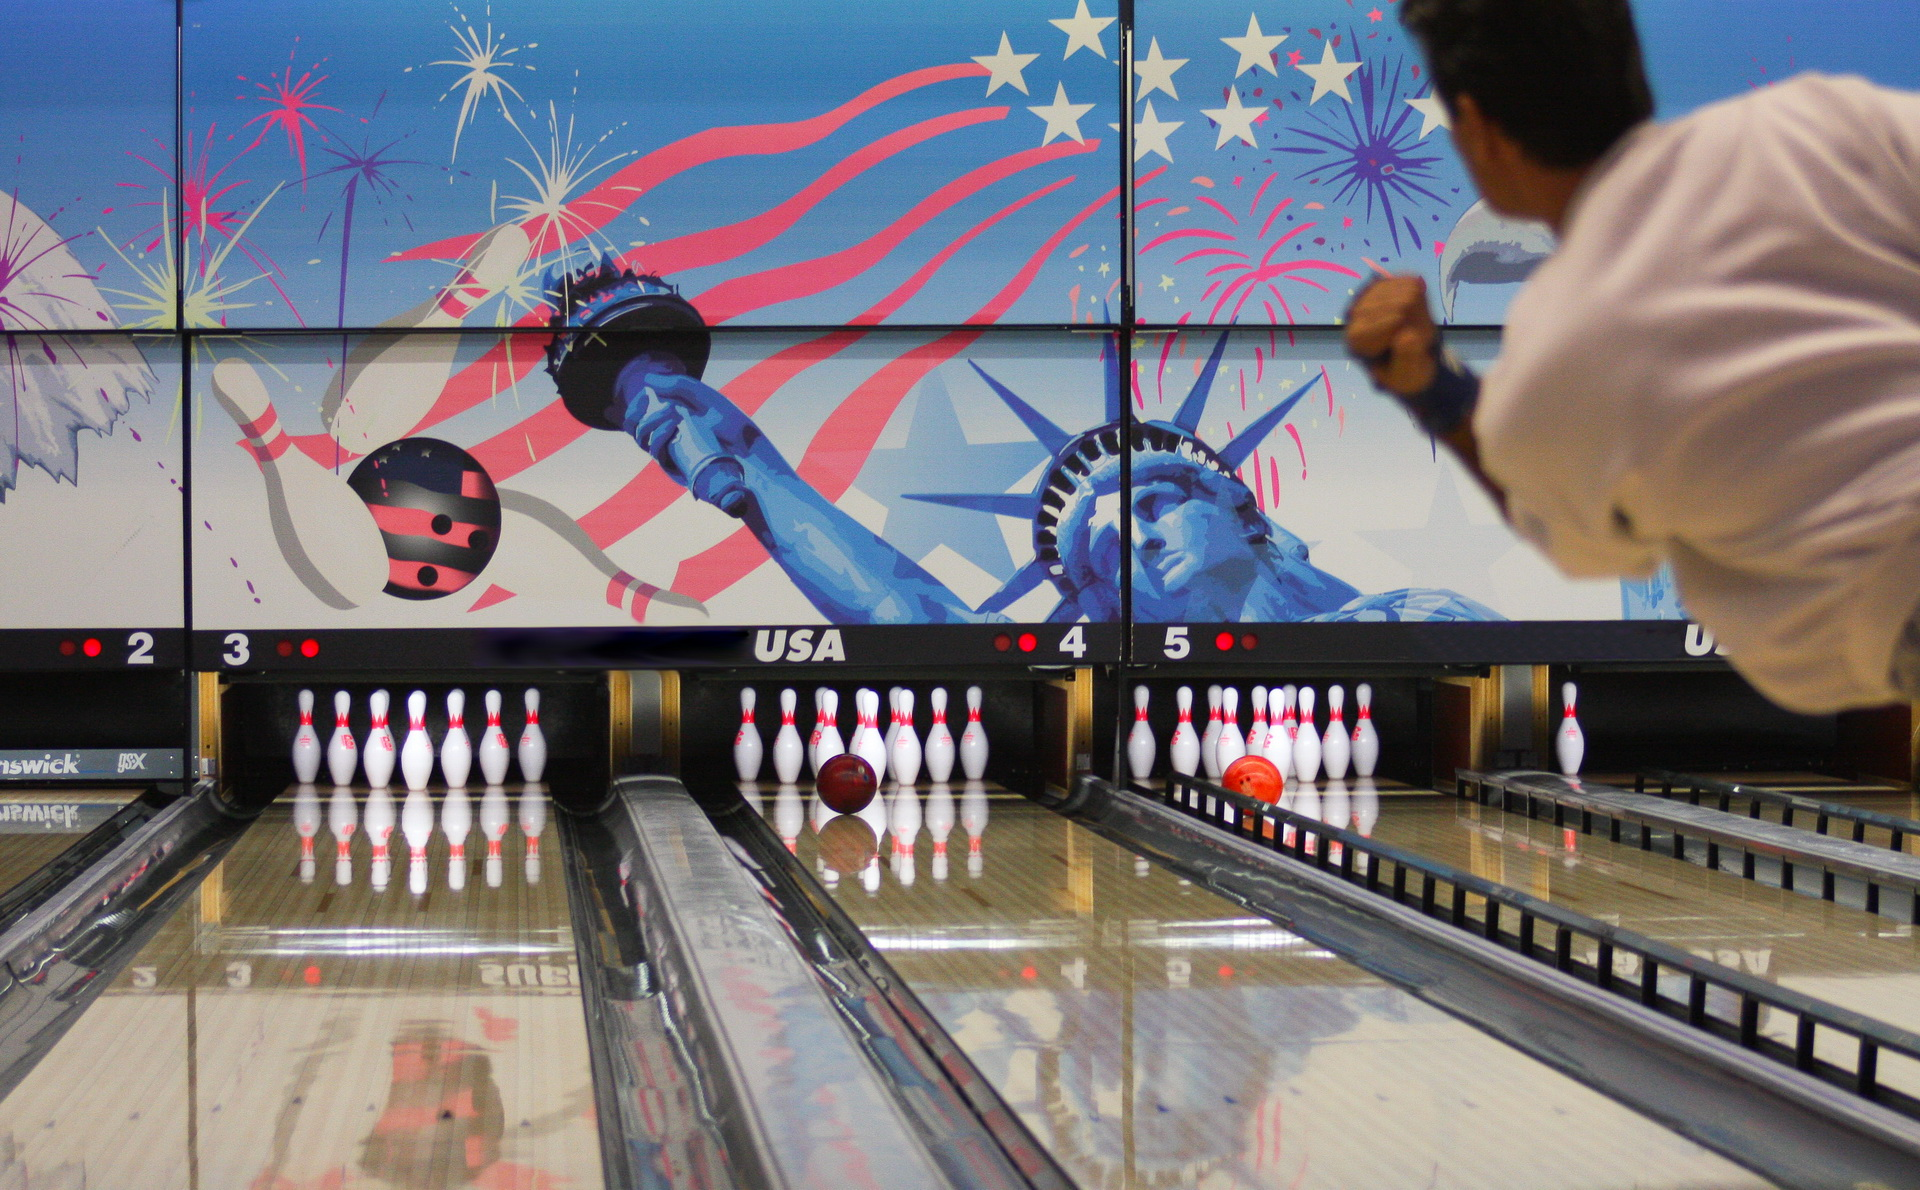 MB POOL – Myrtle Beach Bowling, Darts, & Pool Leagues